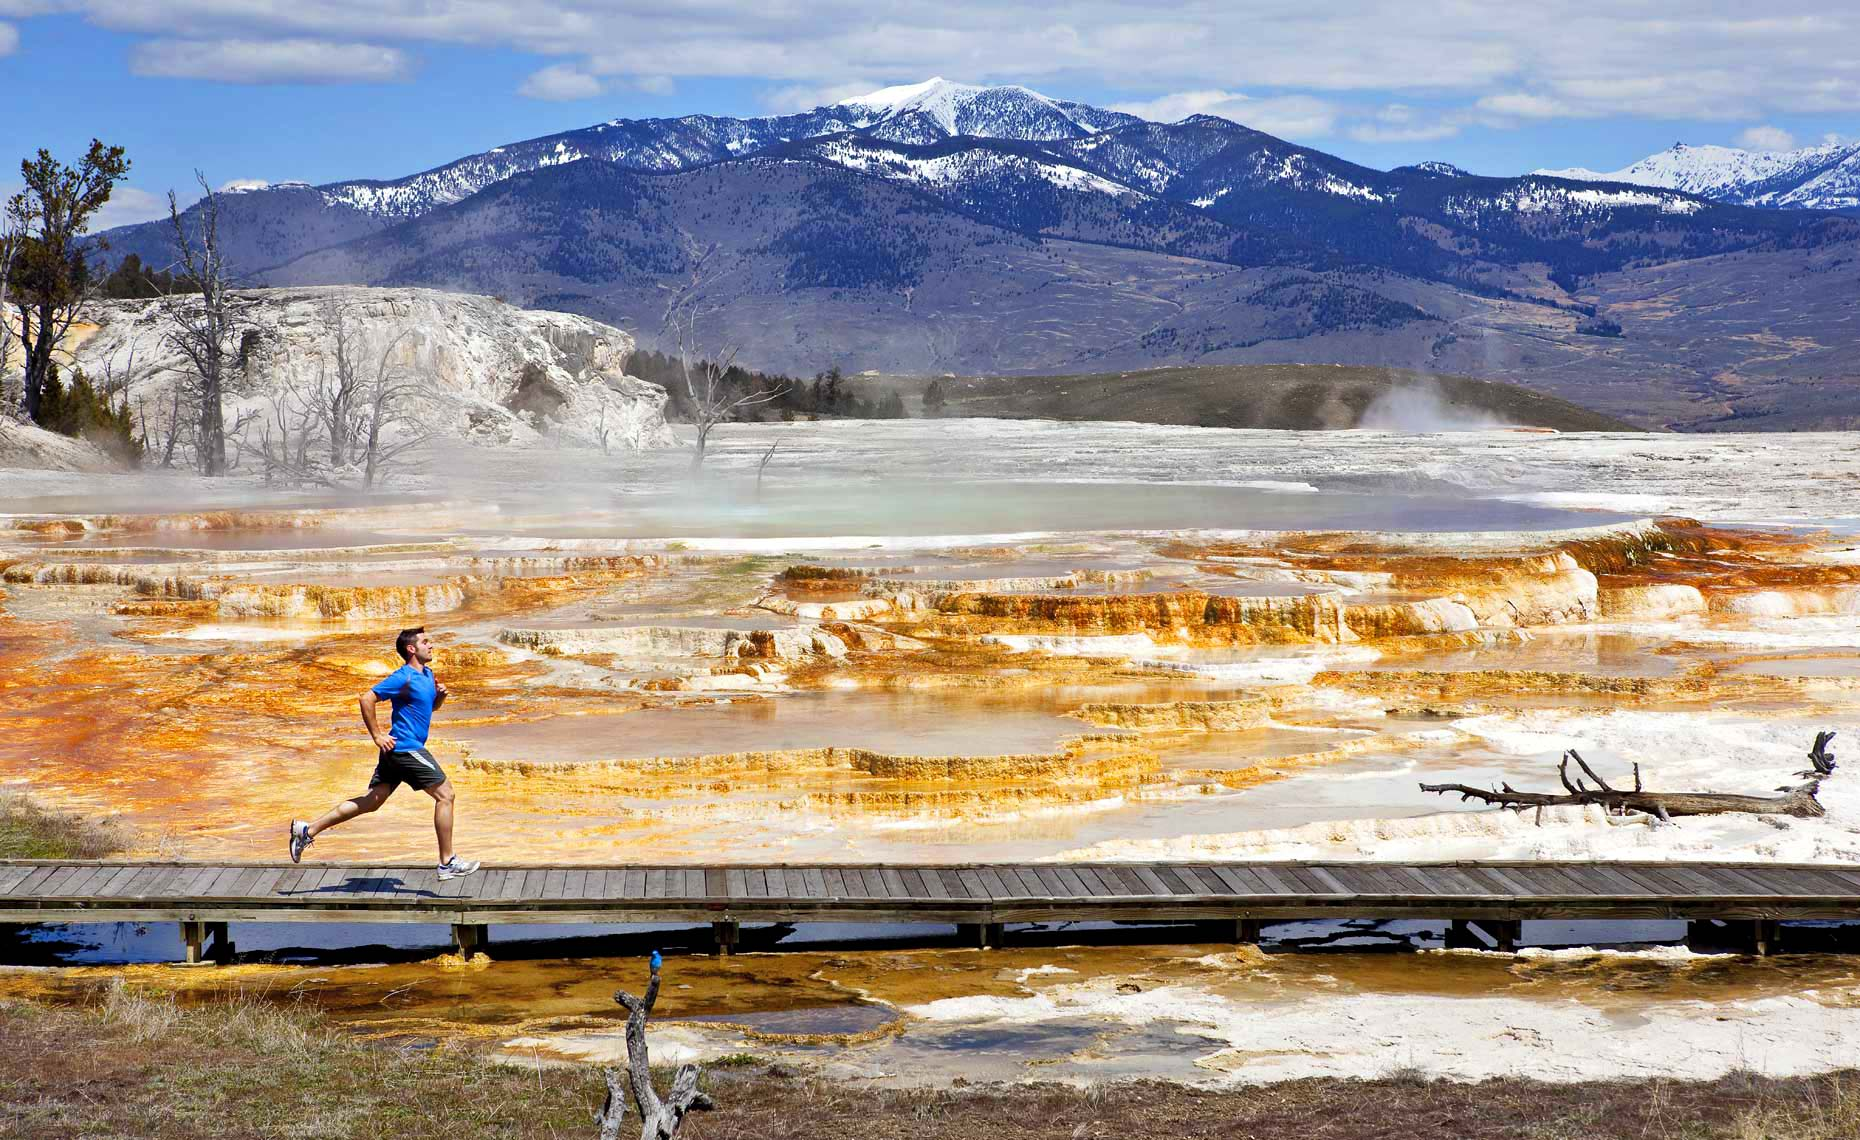 Philadelphia Photographer STEVE BOYLE - Yellowstone National Park Running